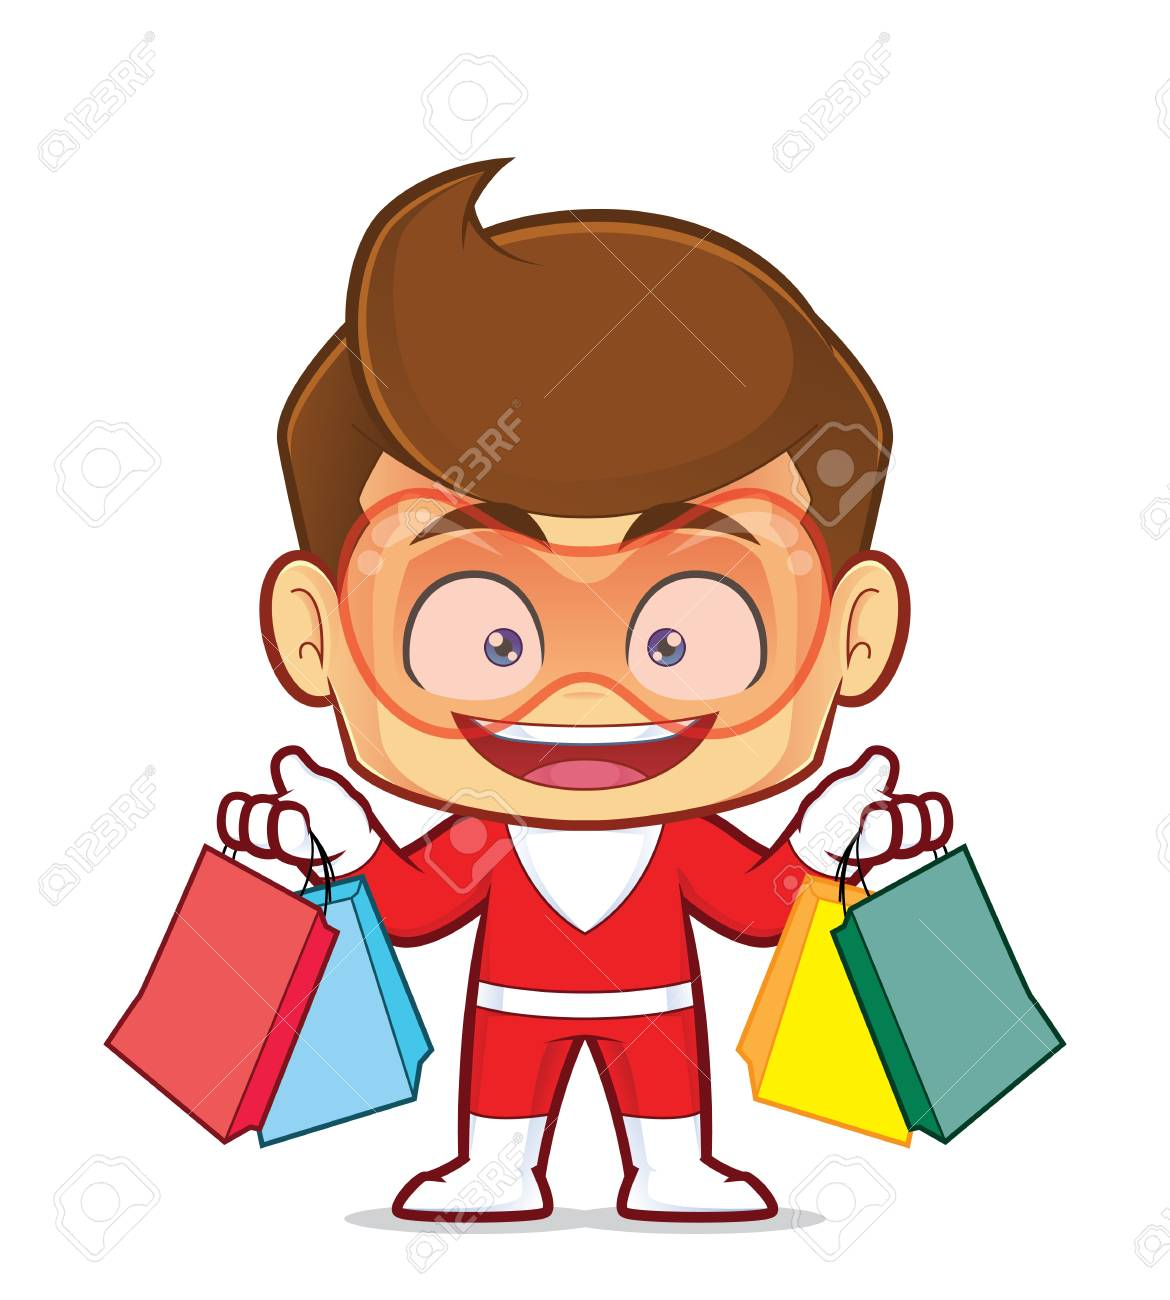 Clipart picture of a superhero cartoon character holding shopping bags - 95378910